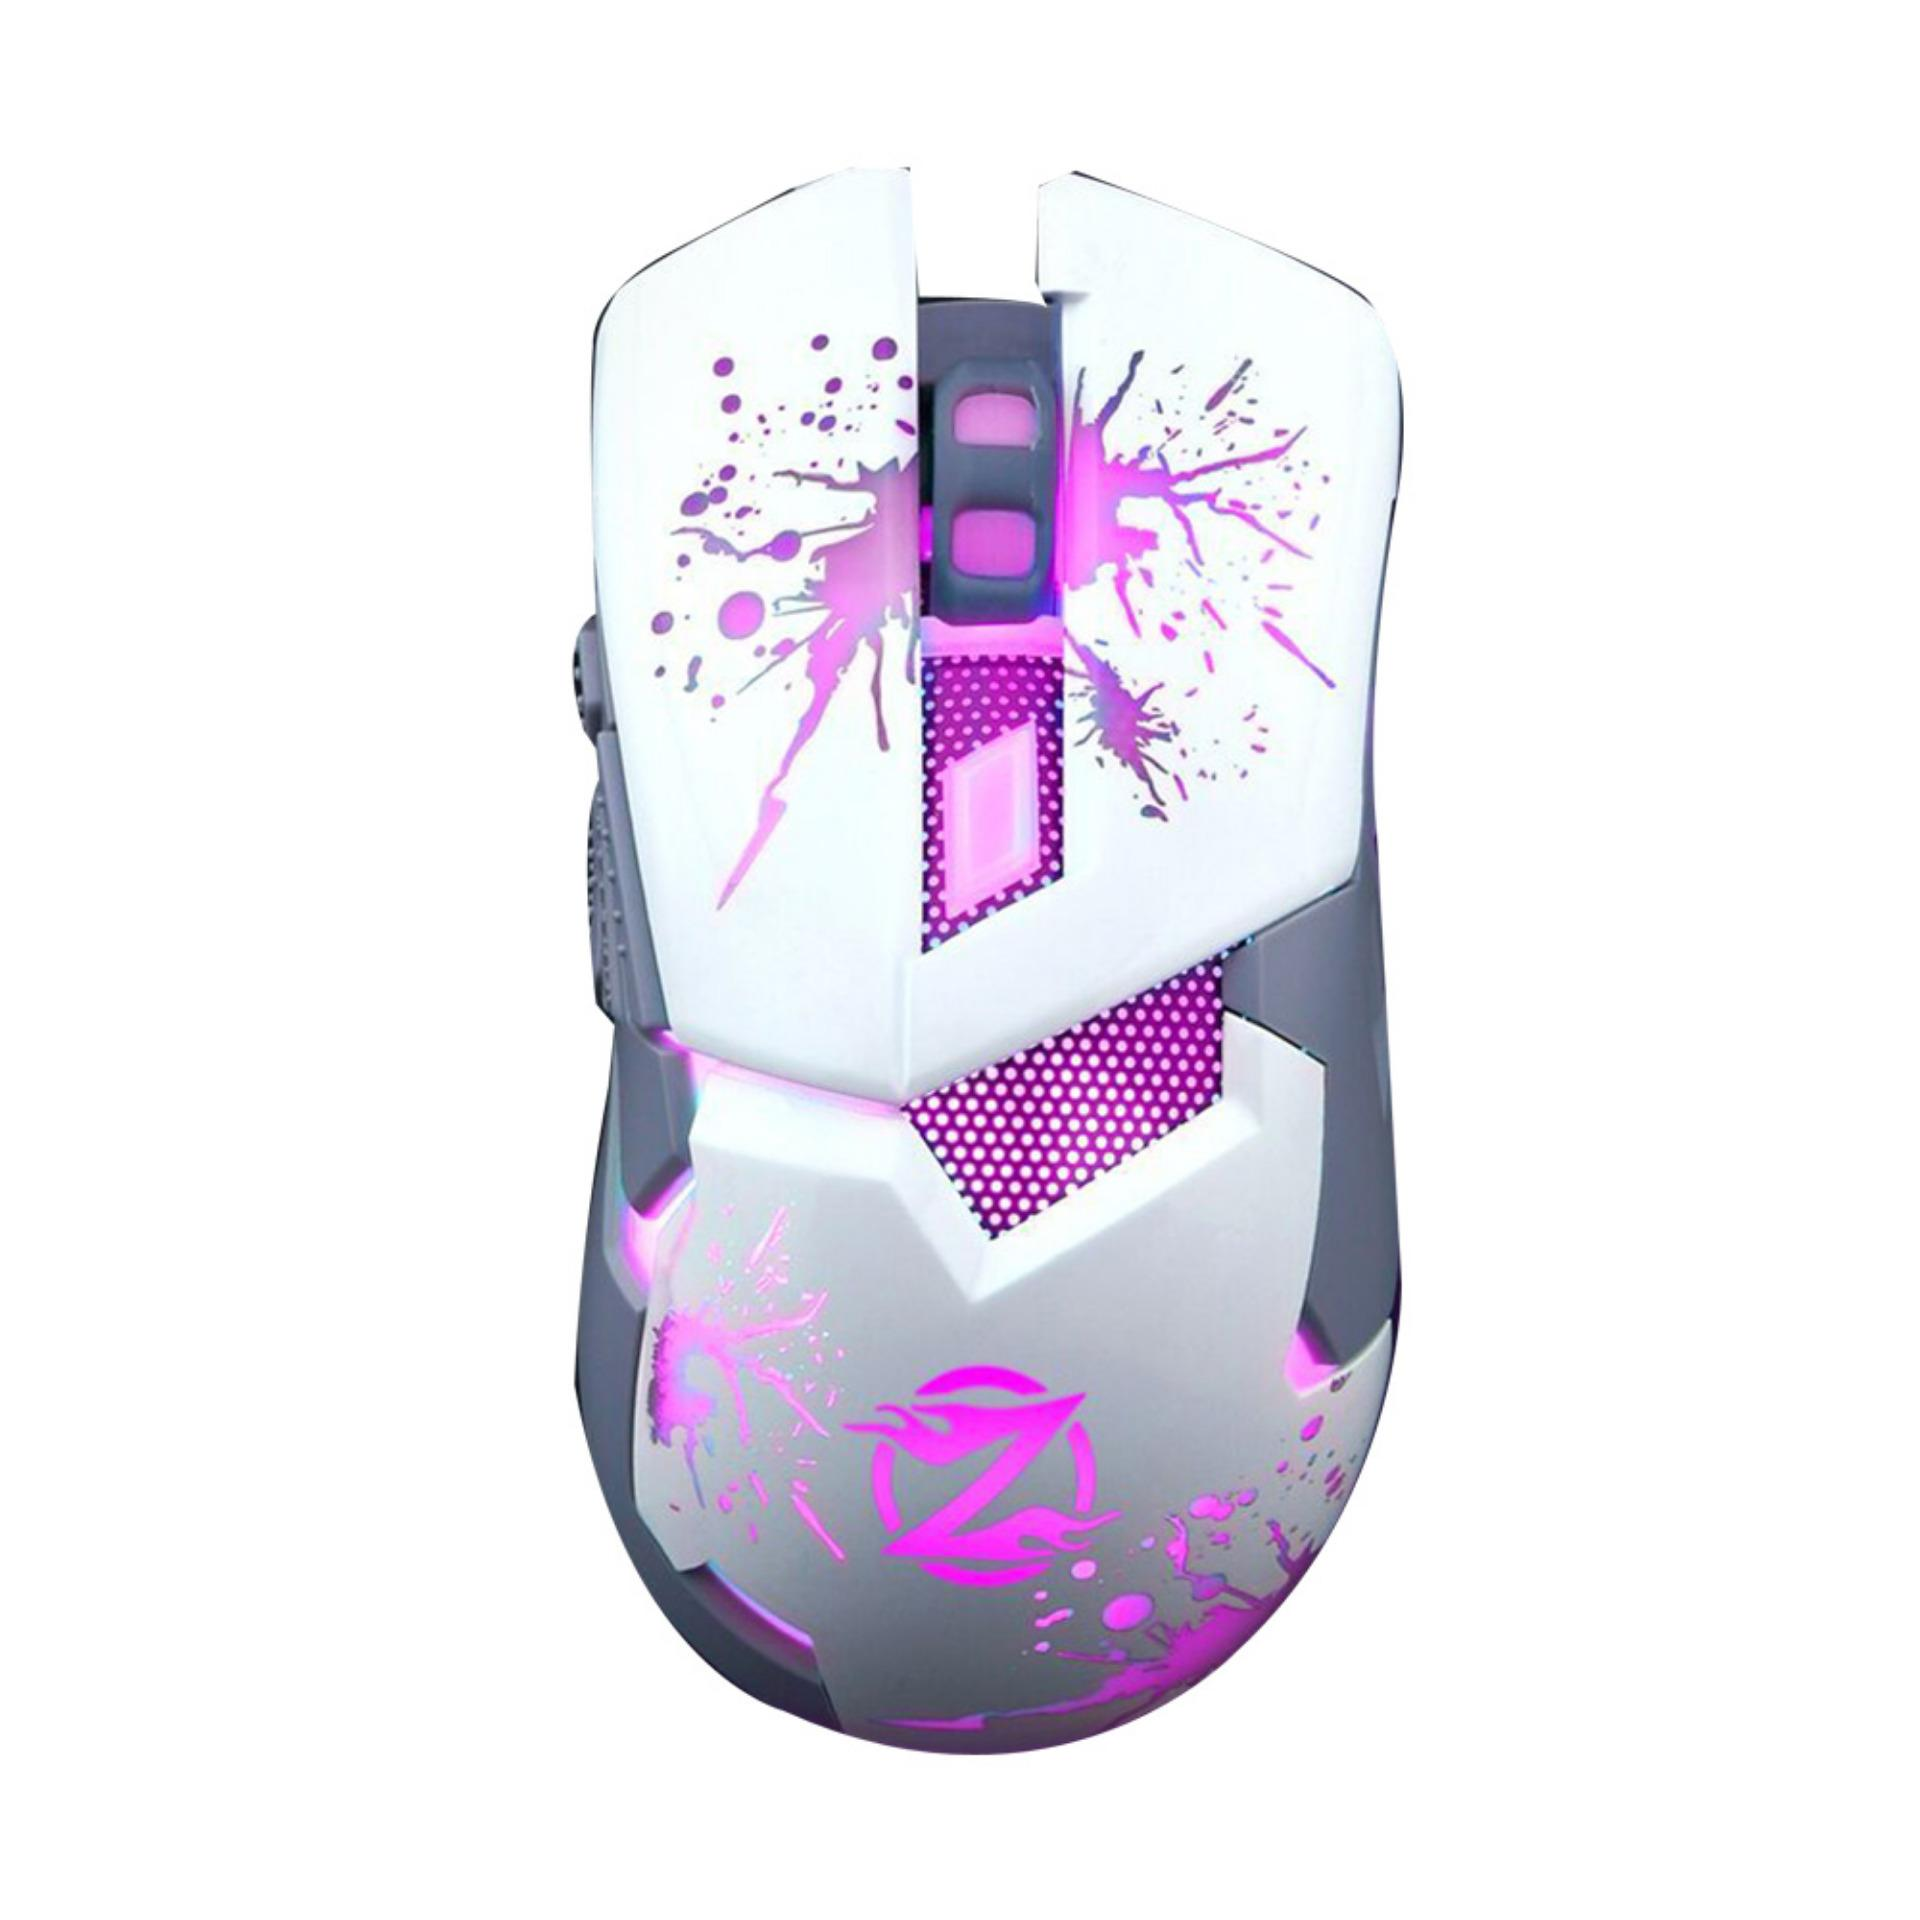 Hot Deals Zornwee Mouse Gaming - Mouse Gaming - Gaming Mouse The Switch Z42 White terbaik